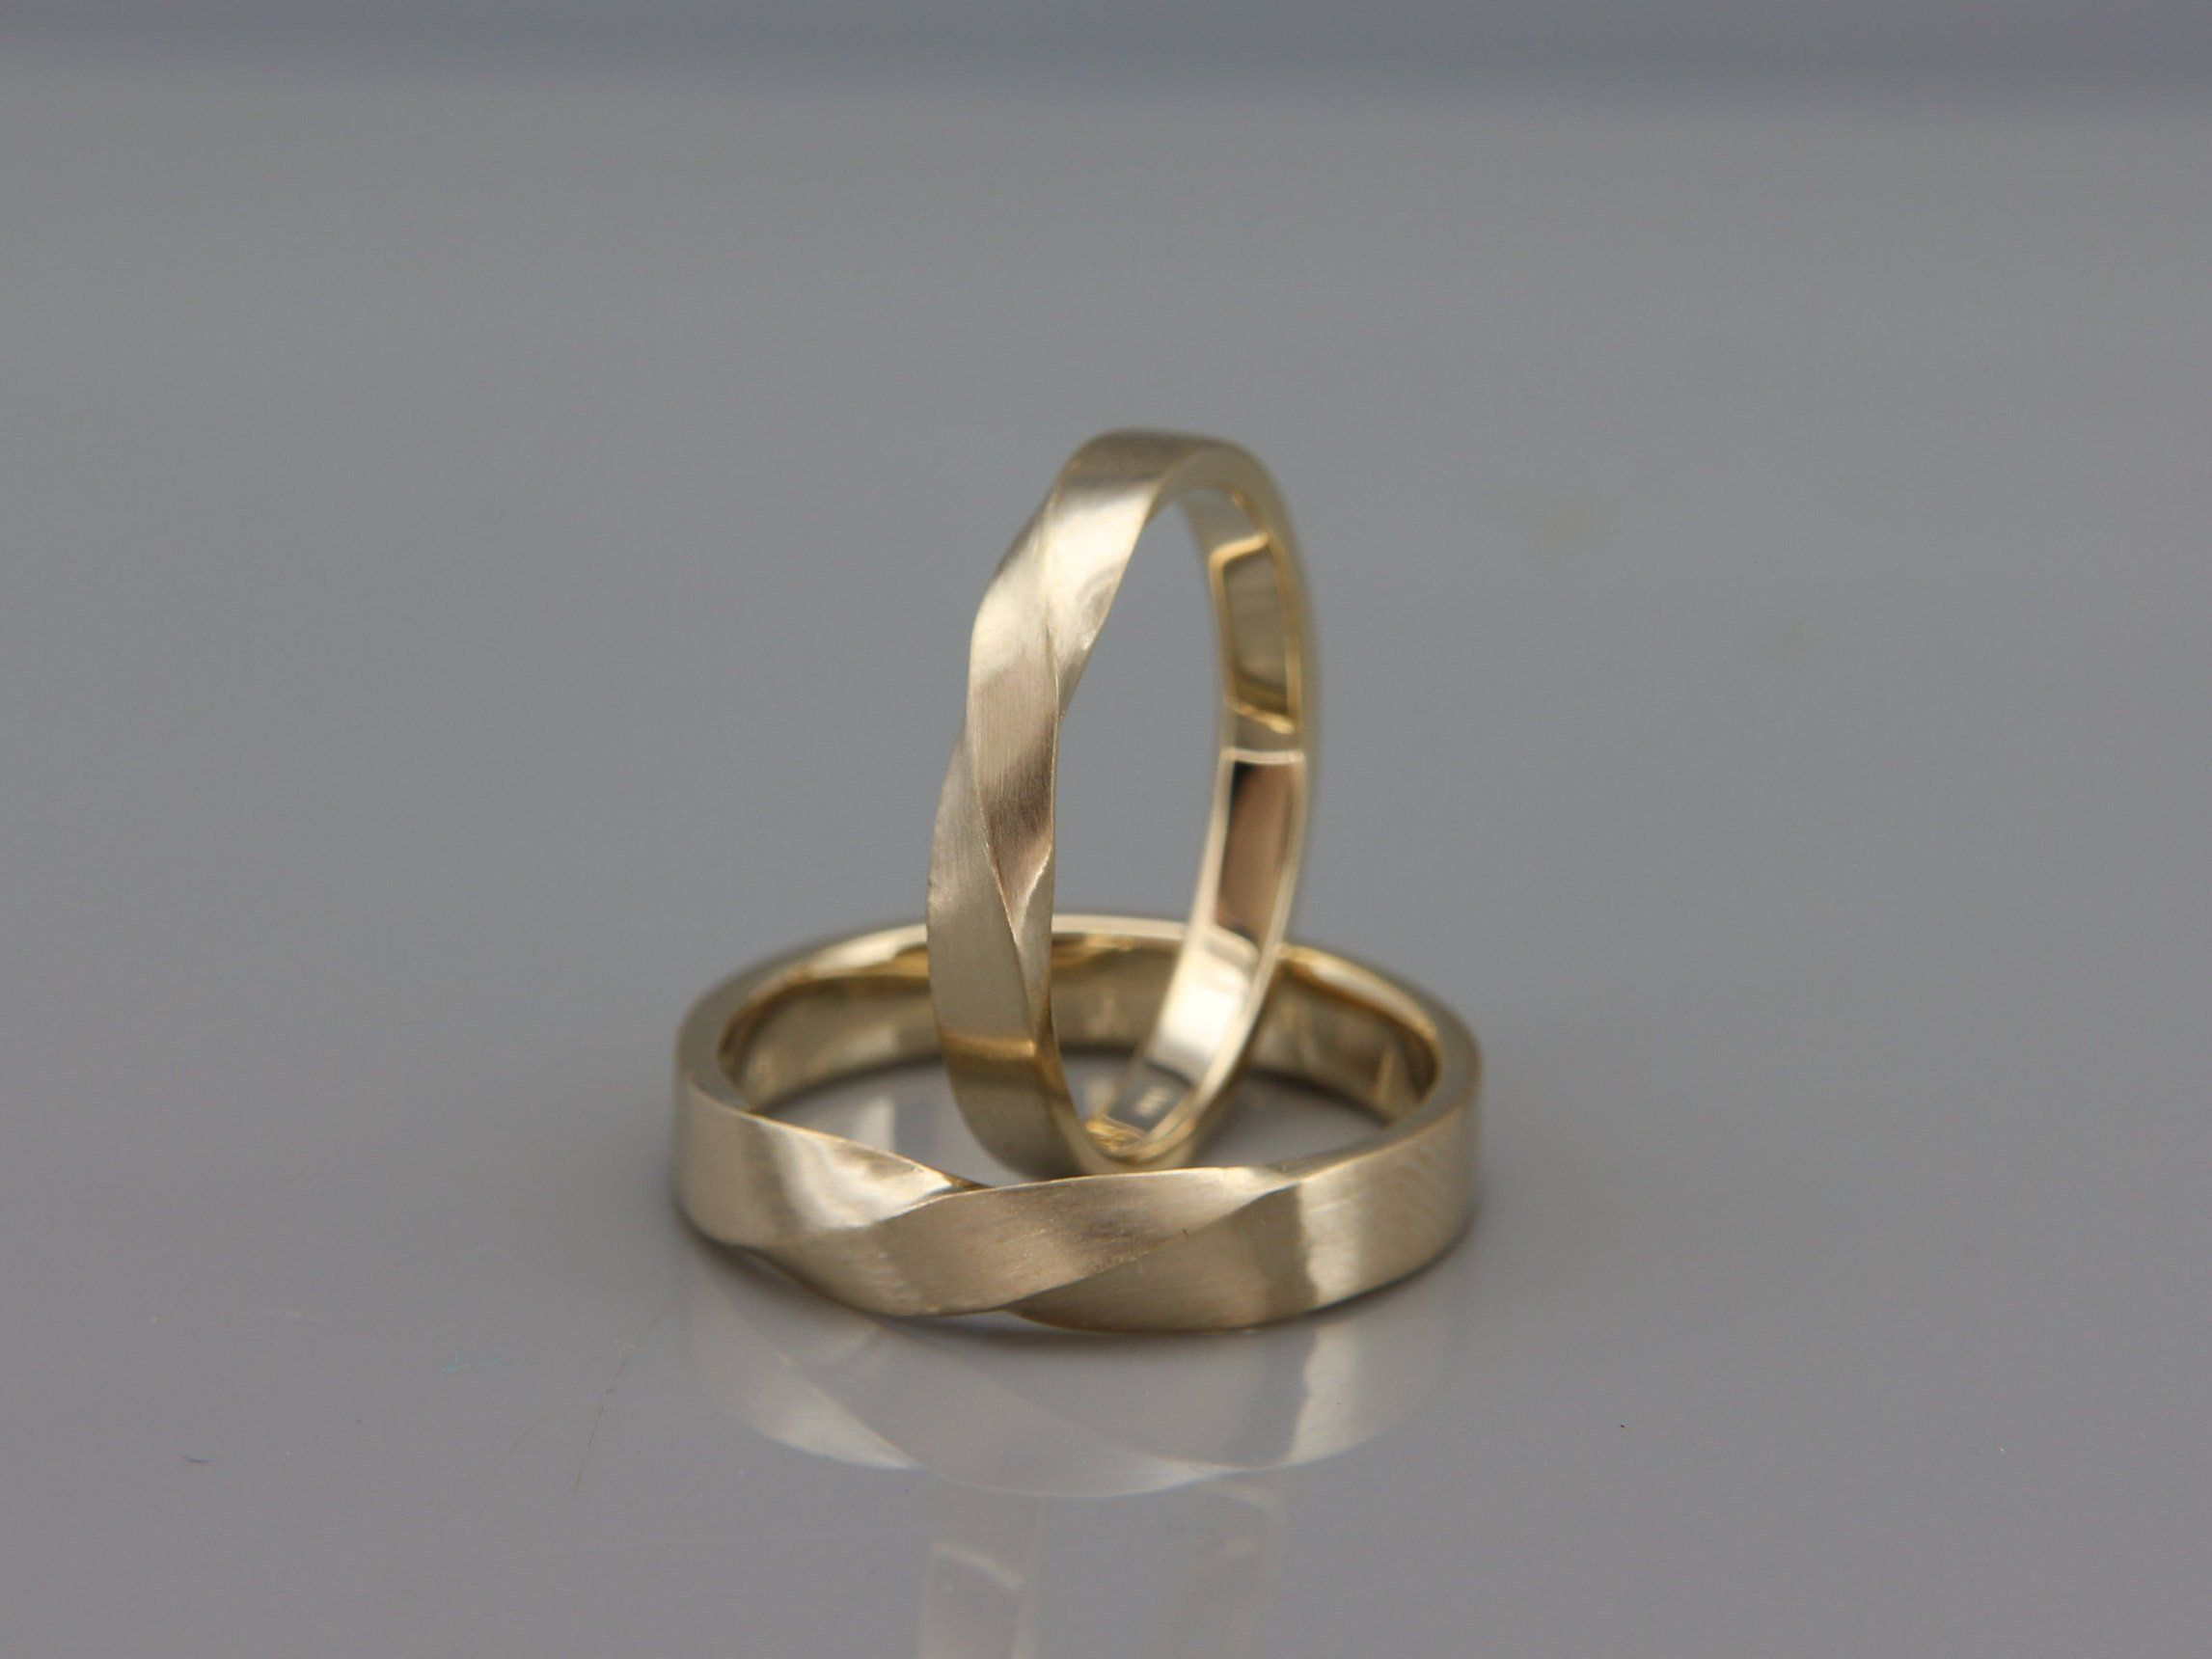 Gold Mubius Rings His and Hers Mobius Wedding Bands set